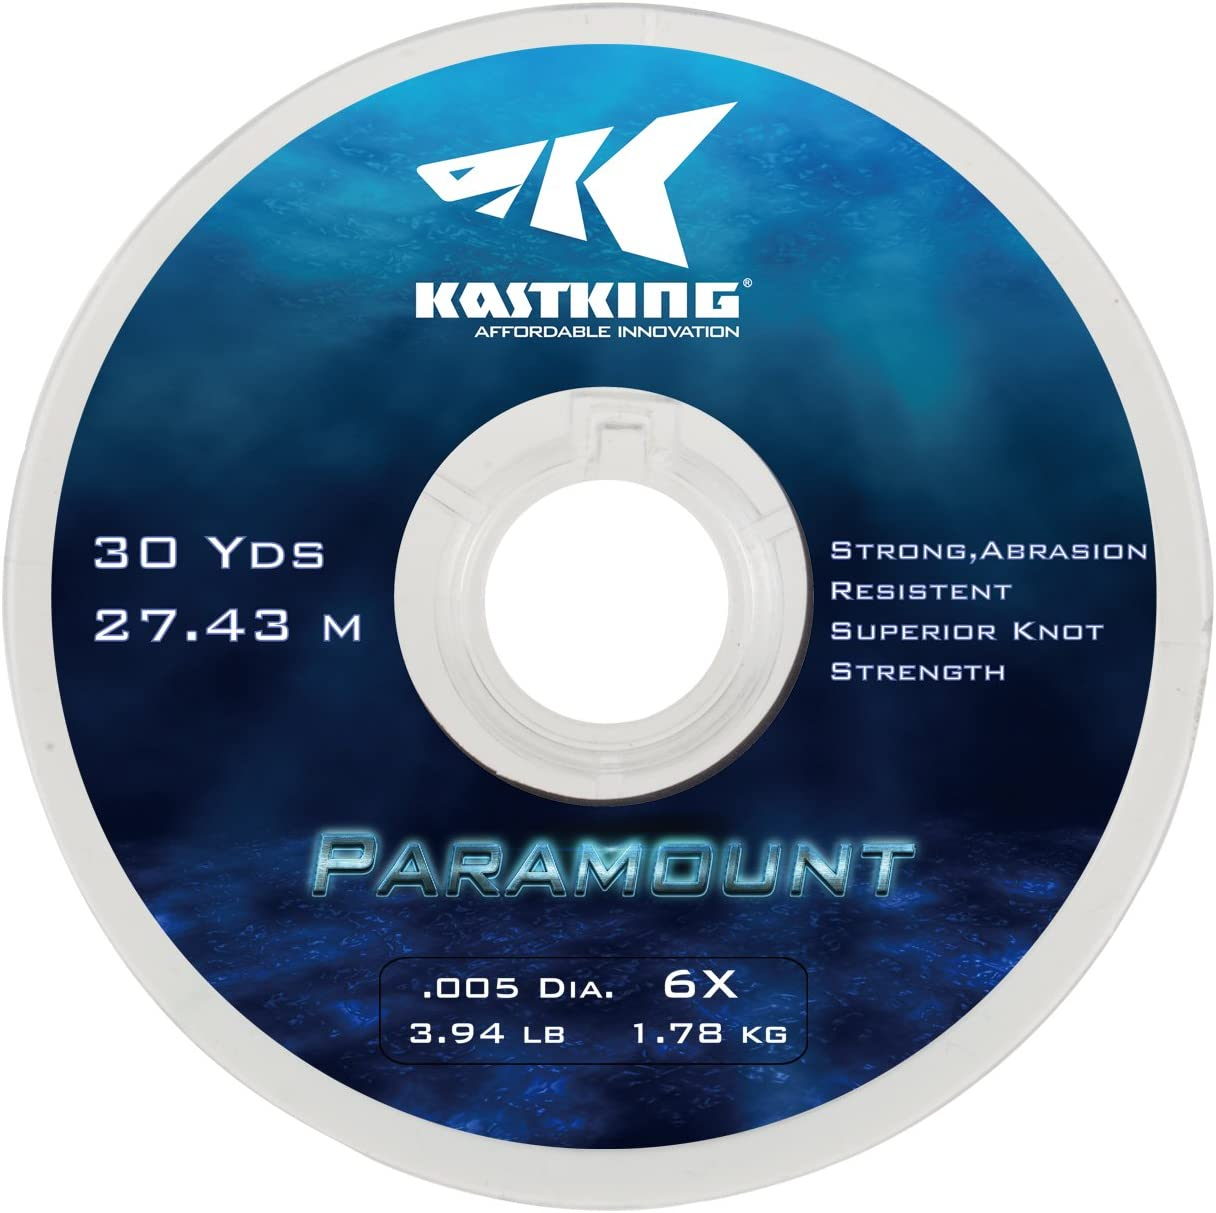 KastKing Paramount Tippet Spools Fly Fishing Line – Nylon Multiplex Monofilament -Abrasion Resistent for Freshwater or Saltwater – Wide Assortment, Size 2X to 6X Available – 3 Spool 5 Spool